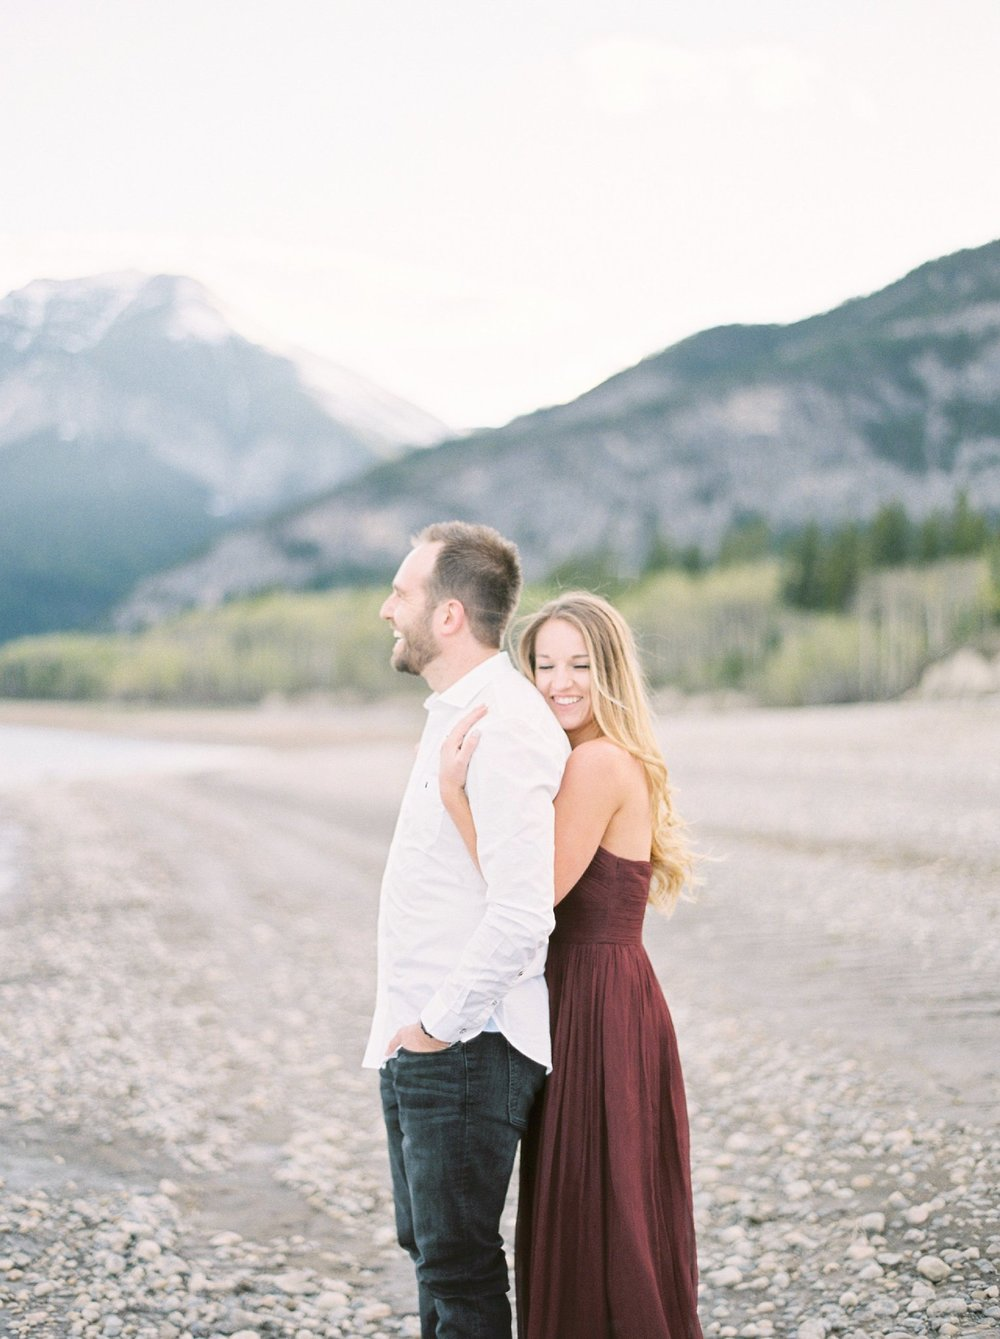 Kananaskis Engagement Calgary Wedding Photographer_0066.jpg